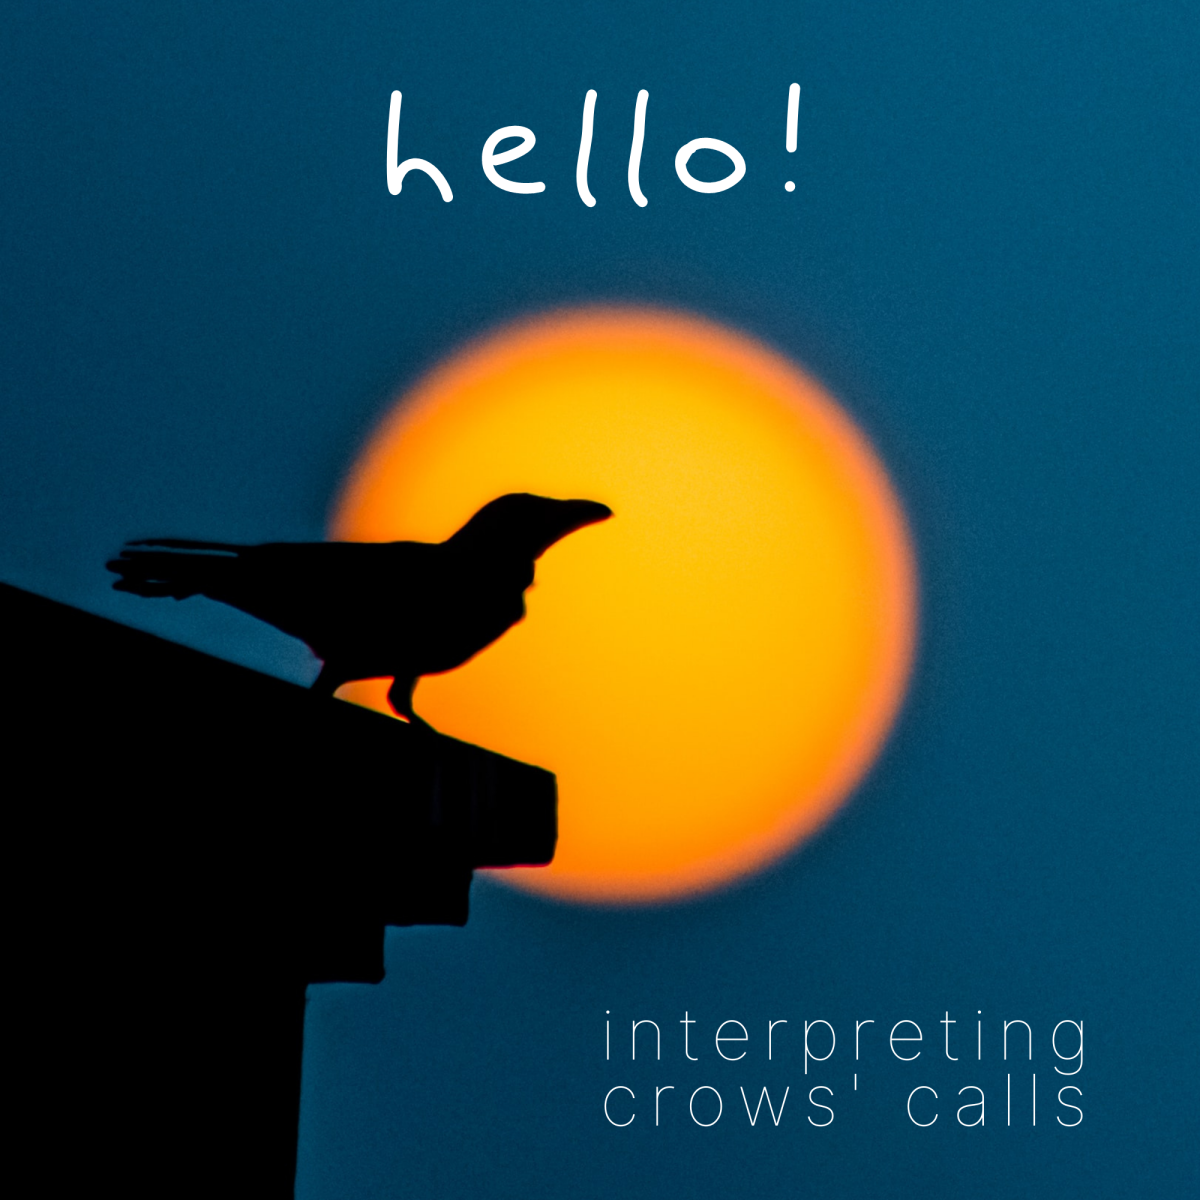 How to interpret crows' calls and caws.